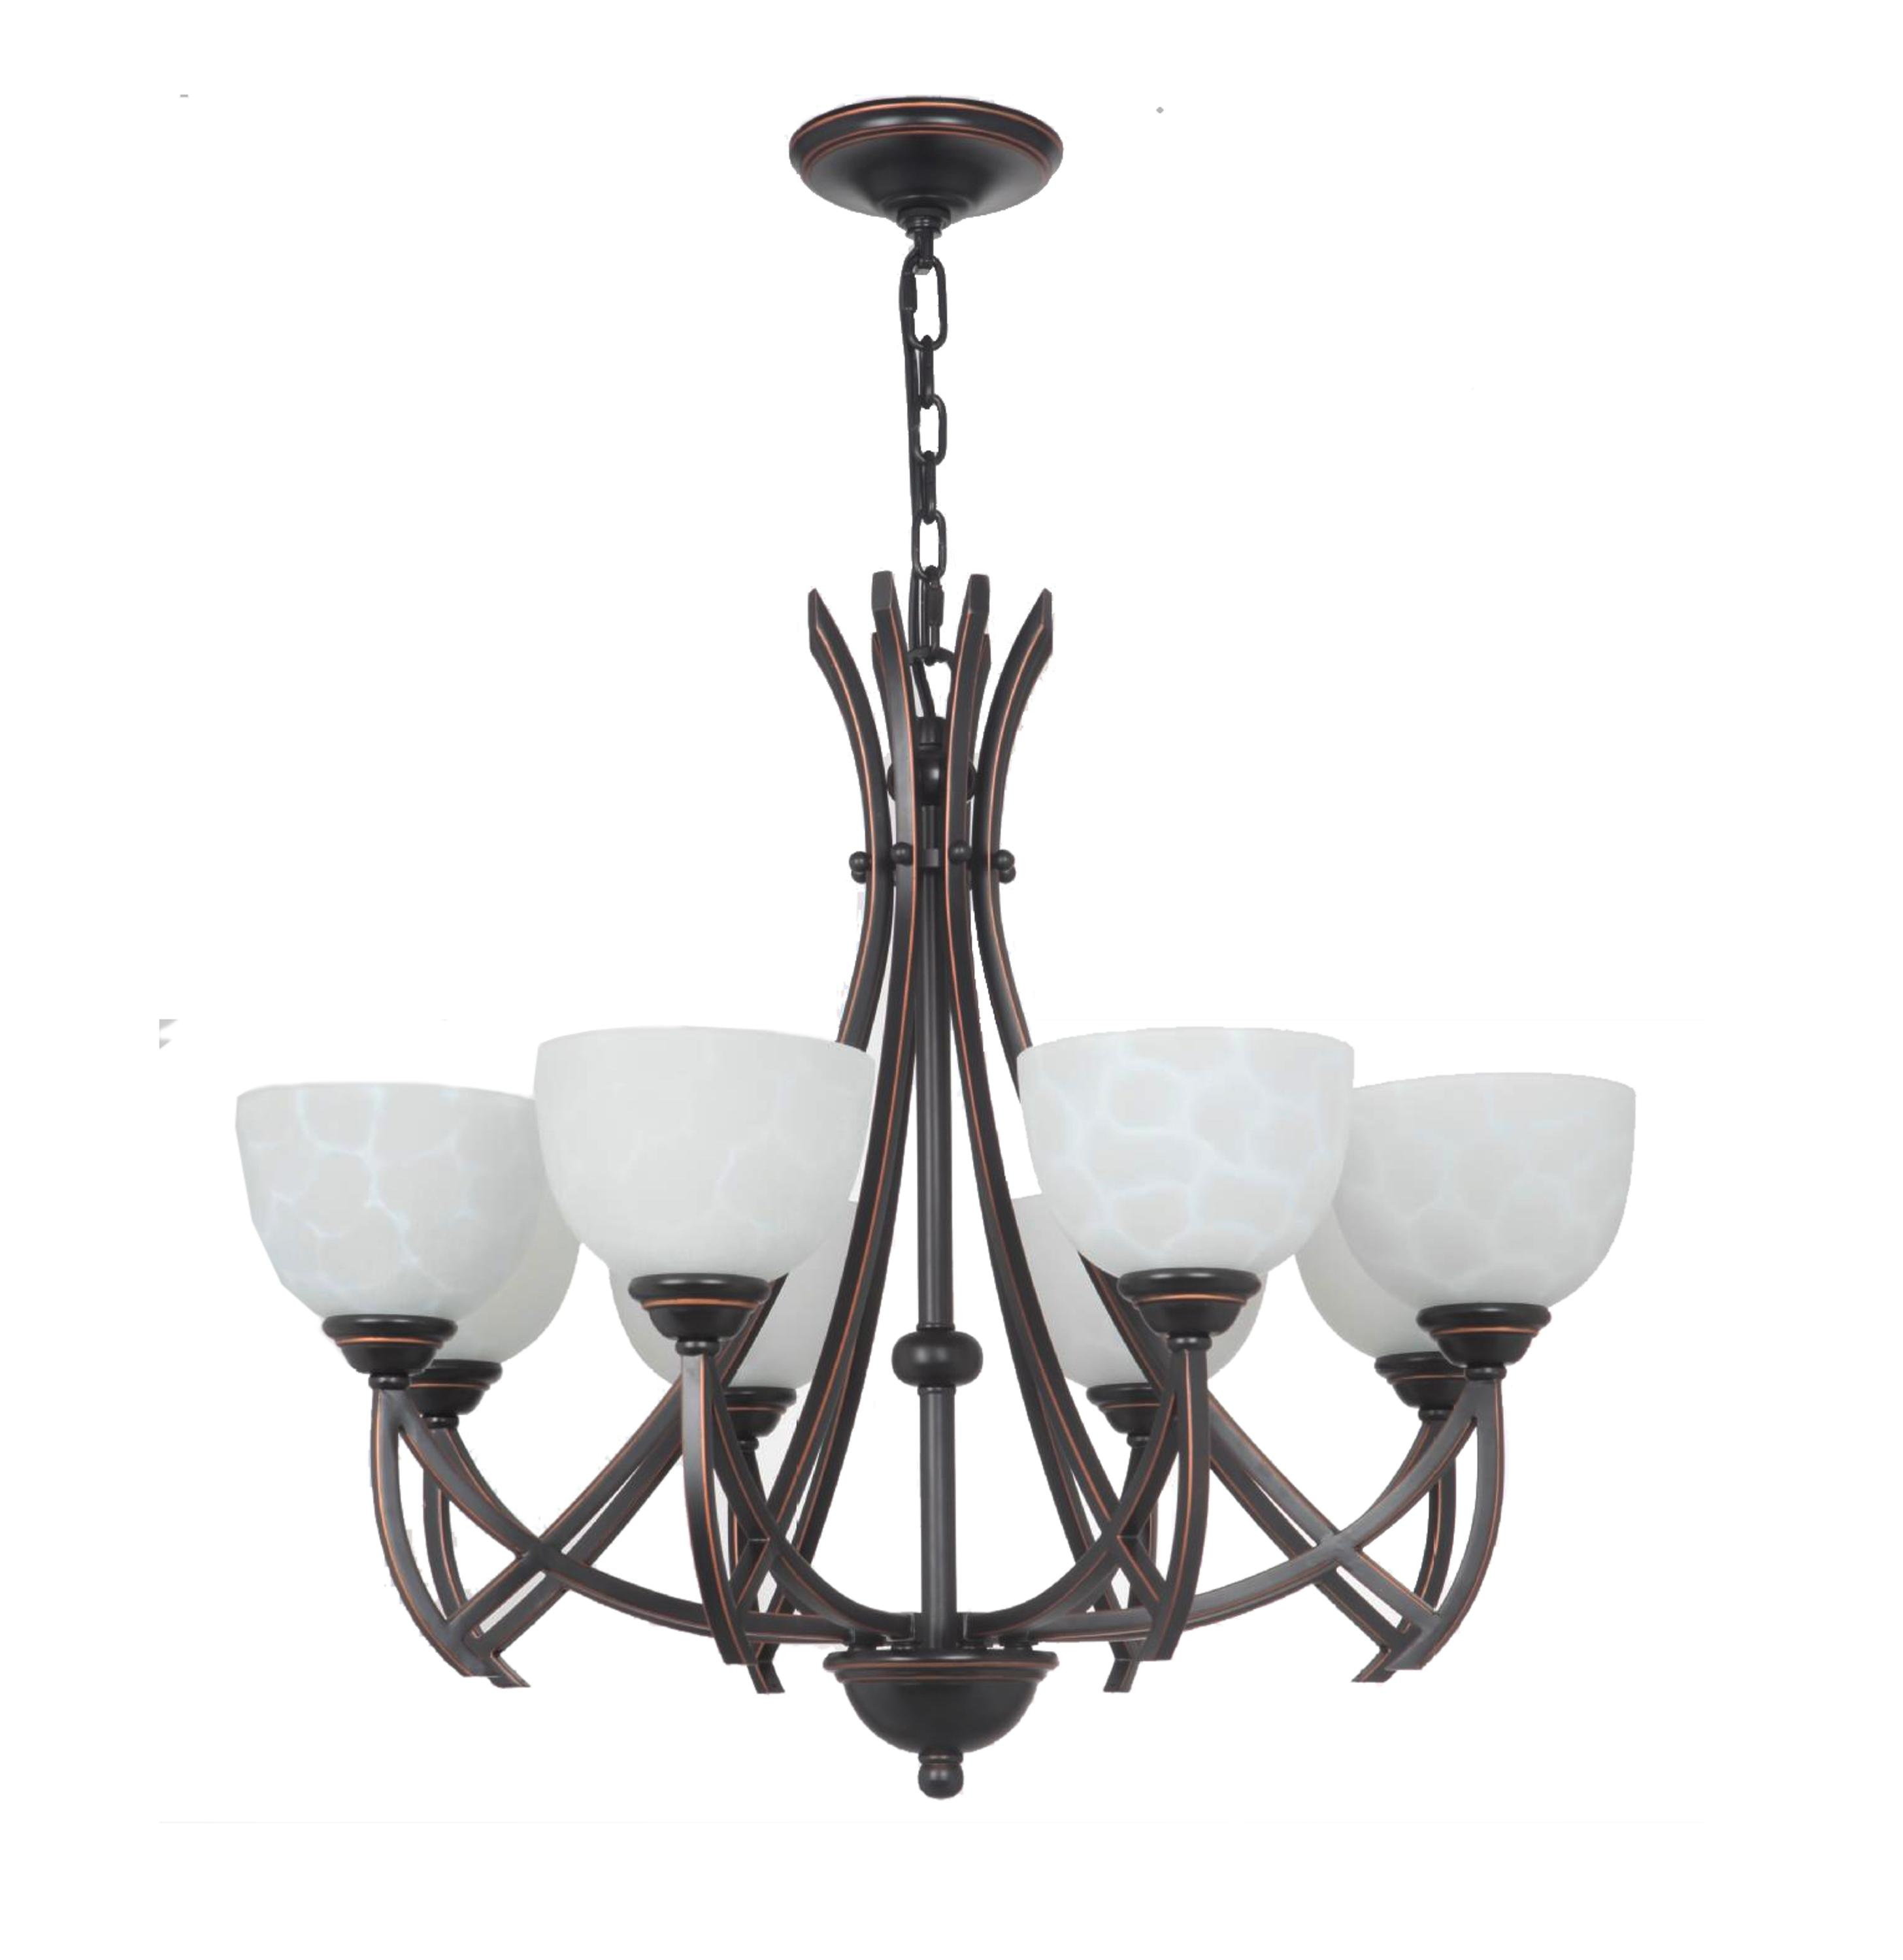 decor shop wrought messina chandelier decorative from lighting crafts italy x iron